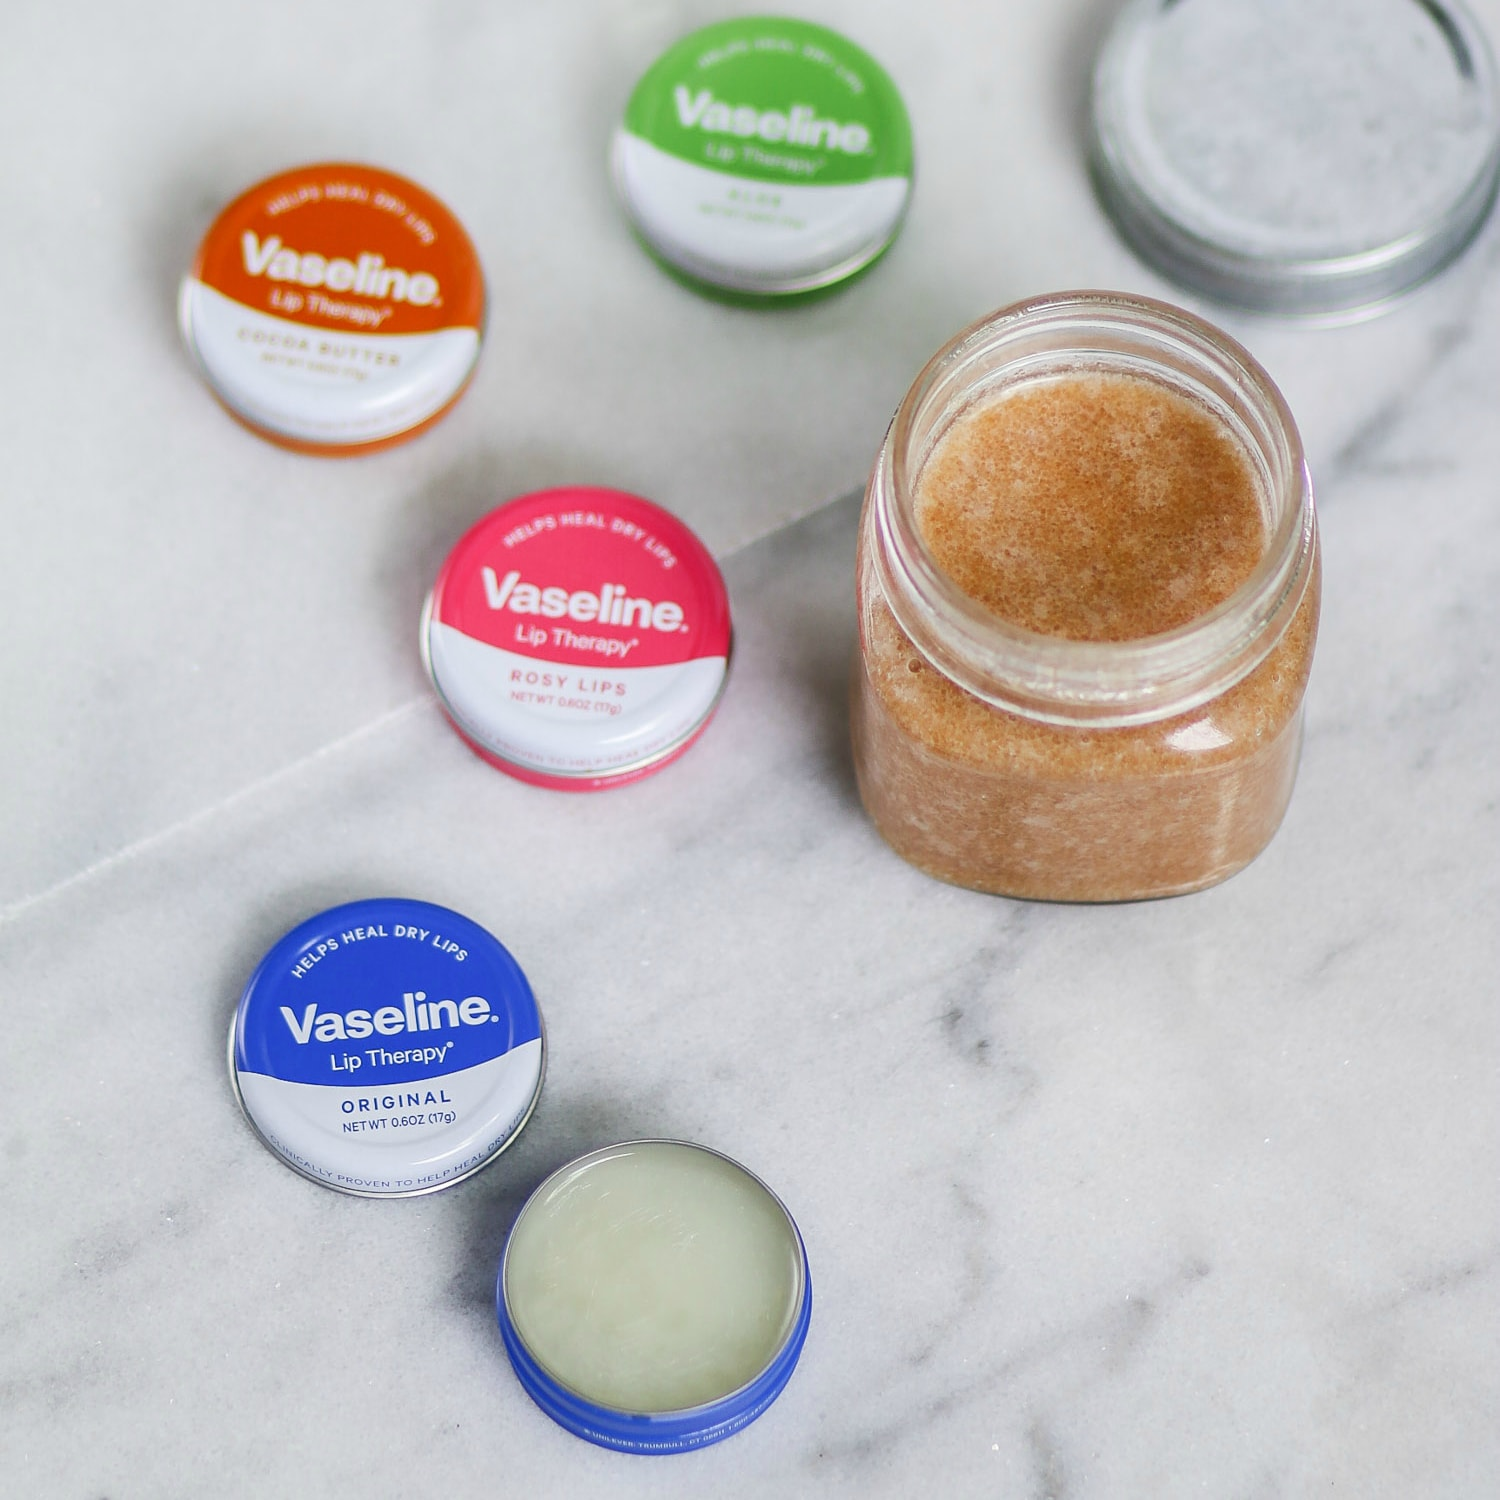 Learn how to heal and prevent chapped lips in today's post on Ashley Brooke! We're sharing an easy, all-natural lip scrub recipe and our favorite lip balm: the Vaseline Lip Therapy lip tins!